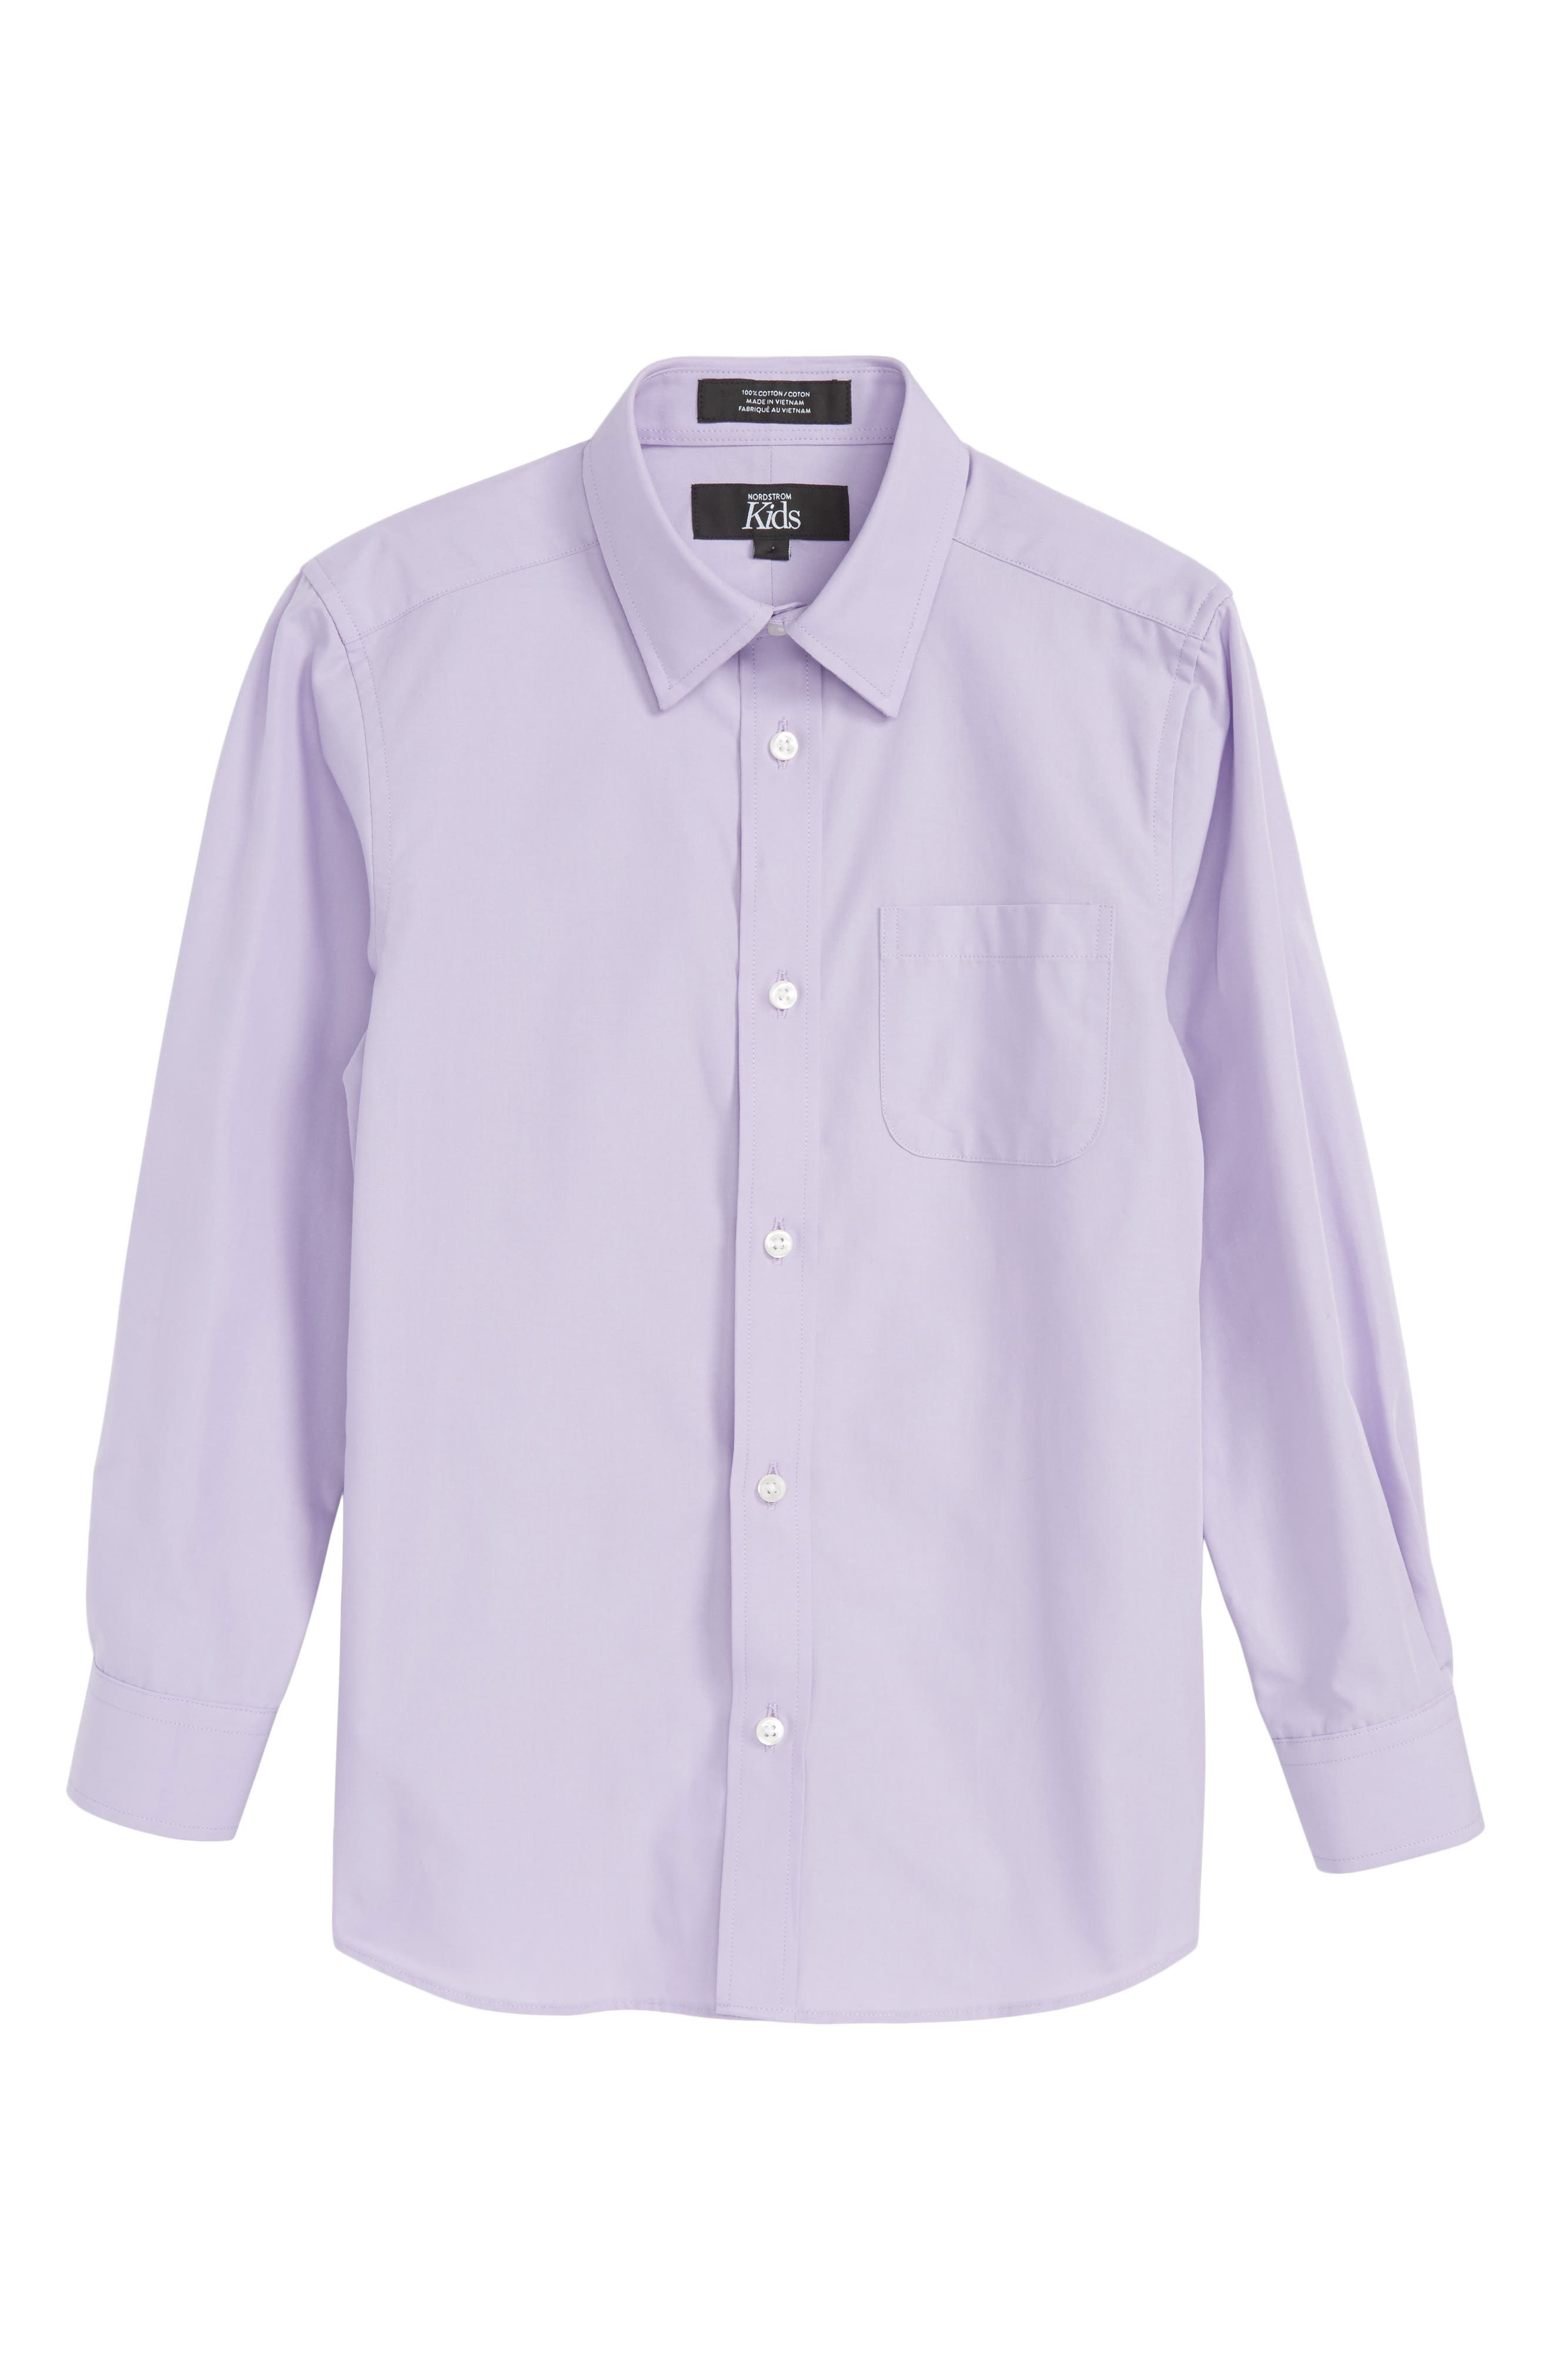 Lavender Spray Sport Shirt,                             Main thumbnail 1, color,                             Lavender Spray